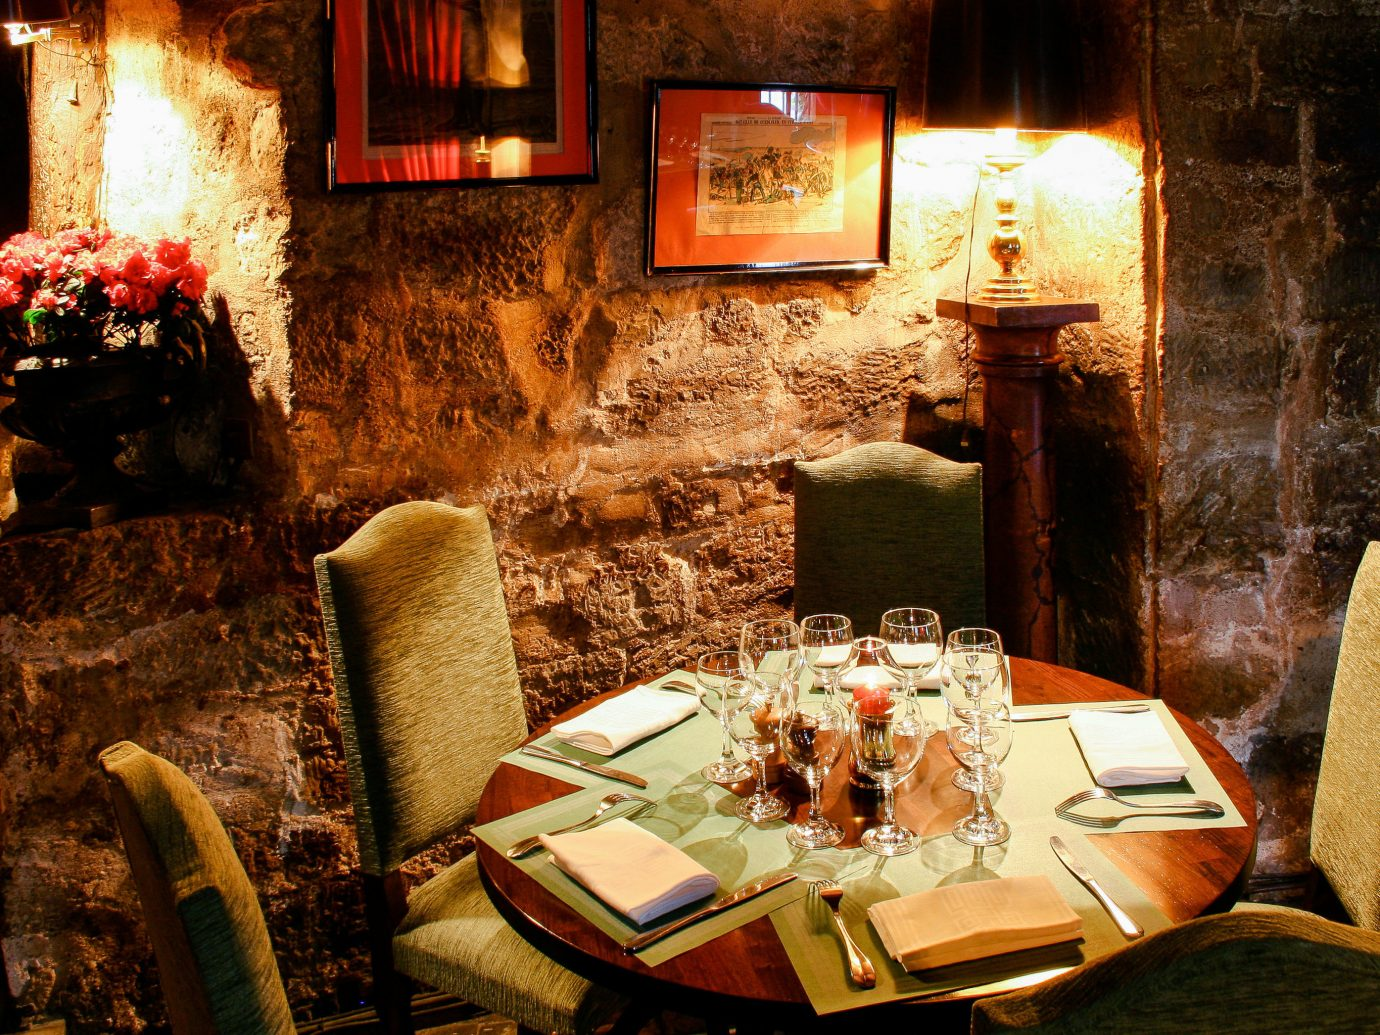 Food + Drink Romance indoor Living restaurant Fireplace table interior design old slice decorated furniture dining table